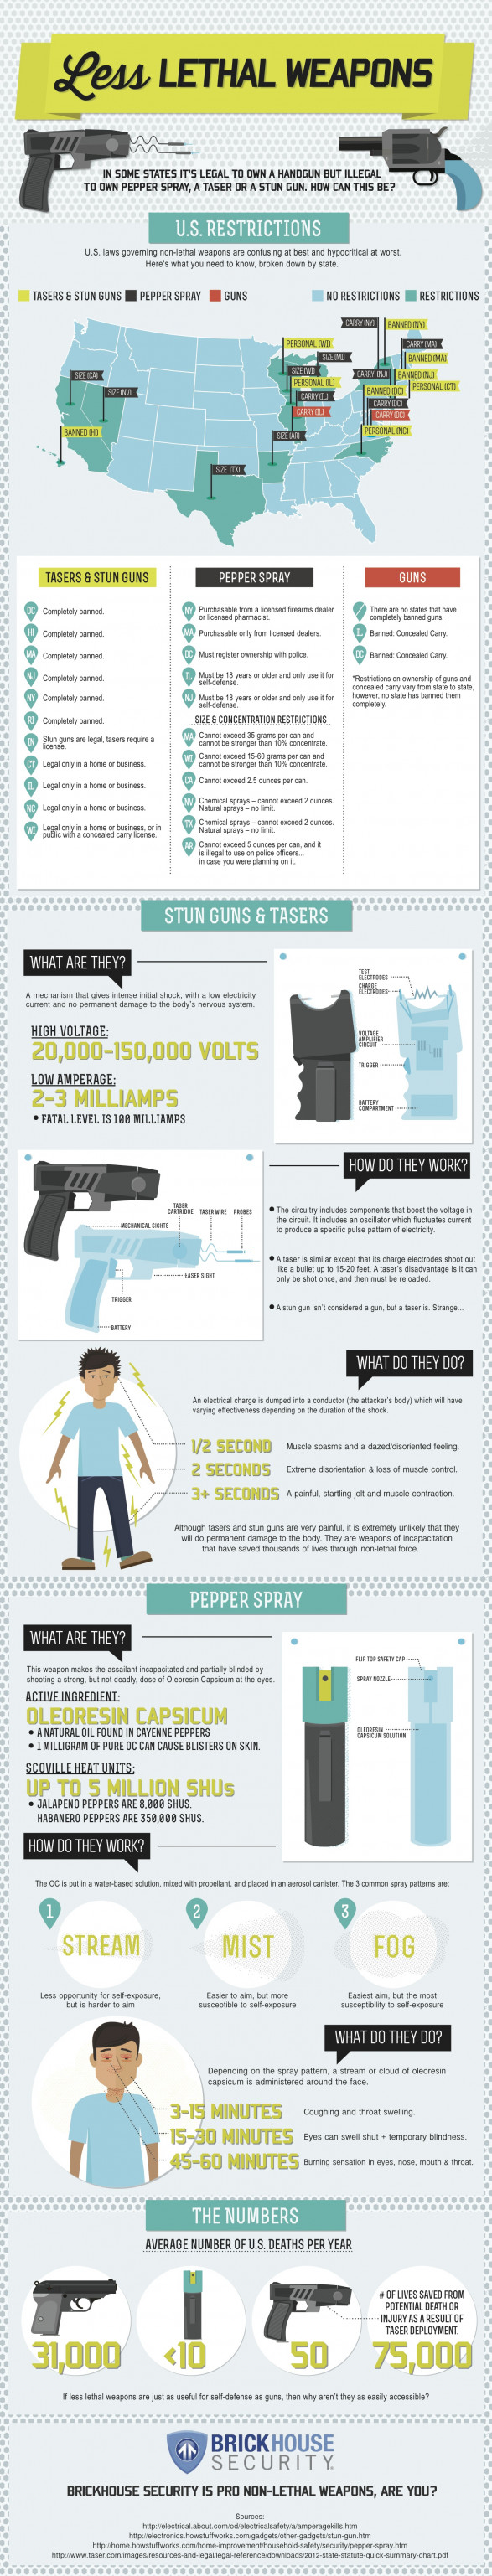 Less Lethal Vs. Lethal Weapons: Inconsistencies in Self Defense Laws